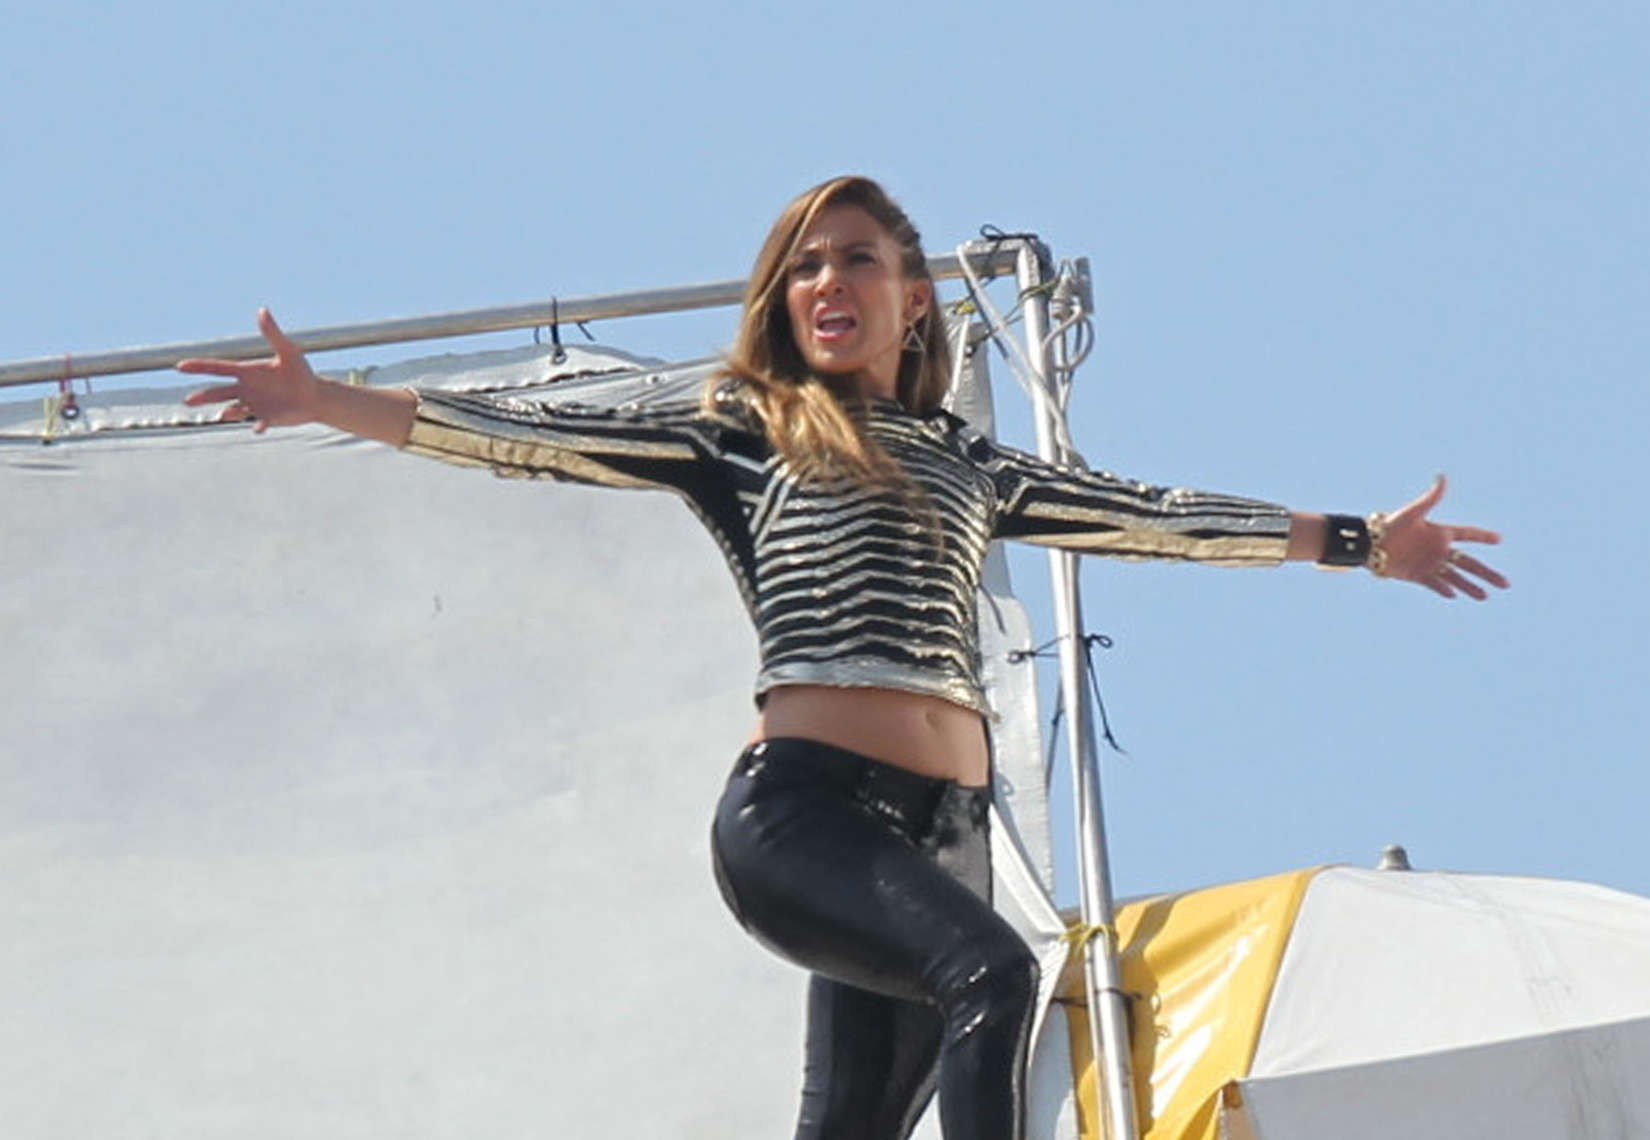 jennifer-lopez-on-the-set-of-follow-the-leader-in-acapulco-28